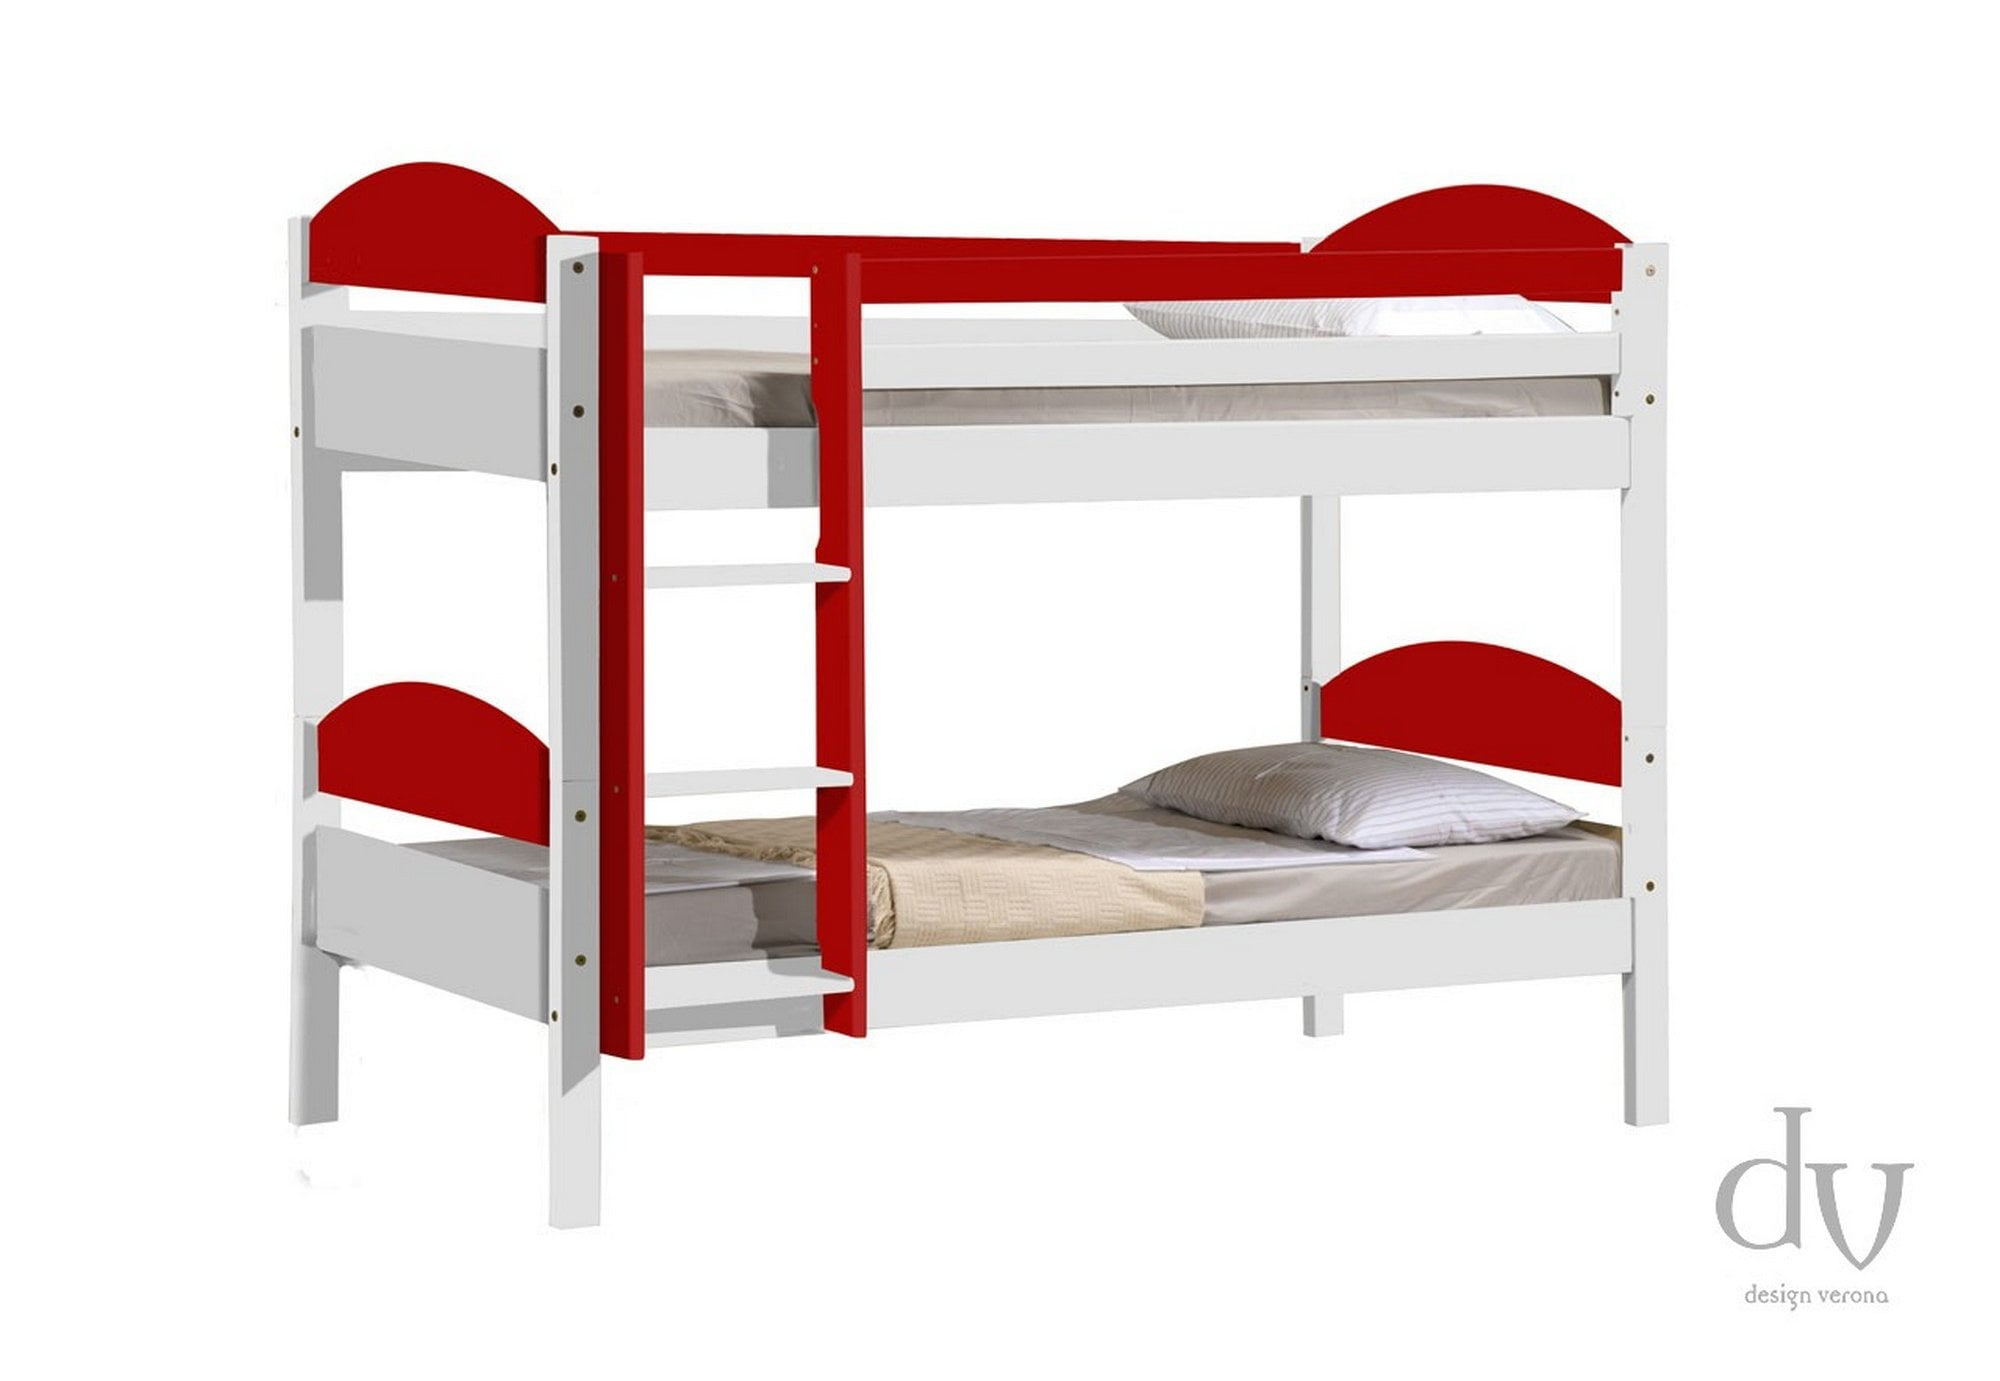 Picture of: Verona Design Verona Maximus Bunk Bed 3ft Whitewash With Red Details Bunk Beds From Beds 4 Less Uk